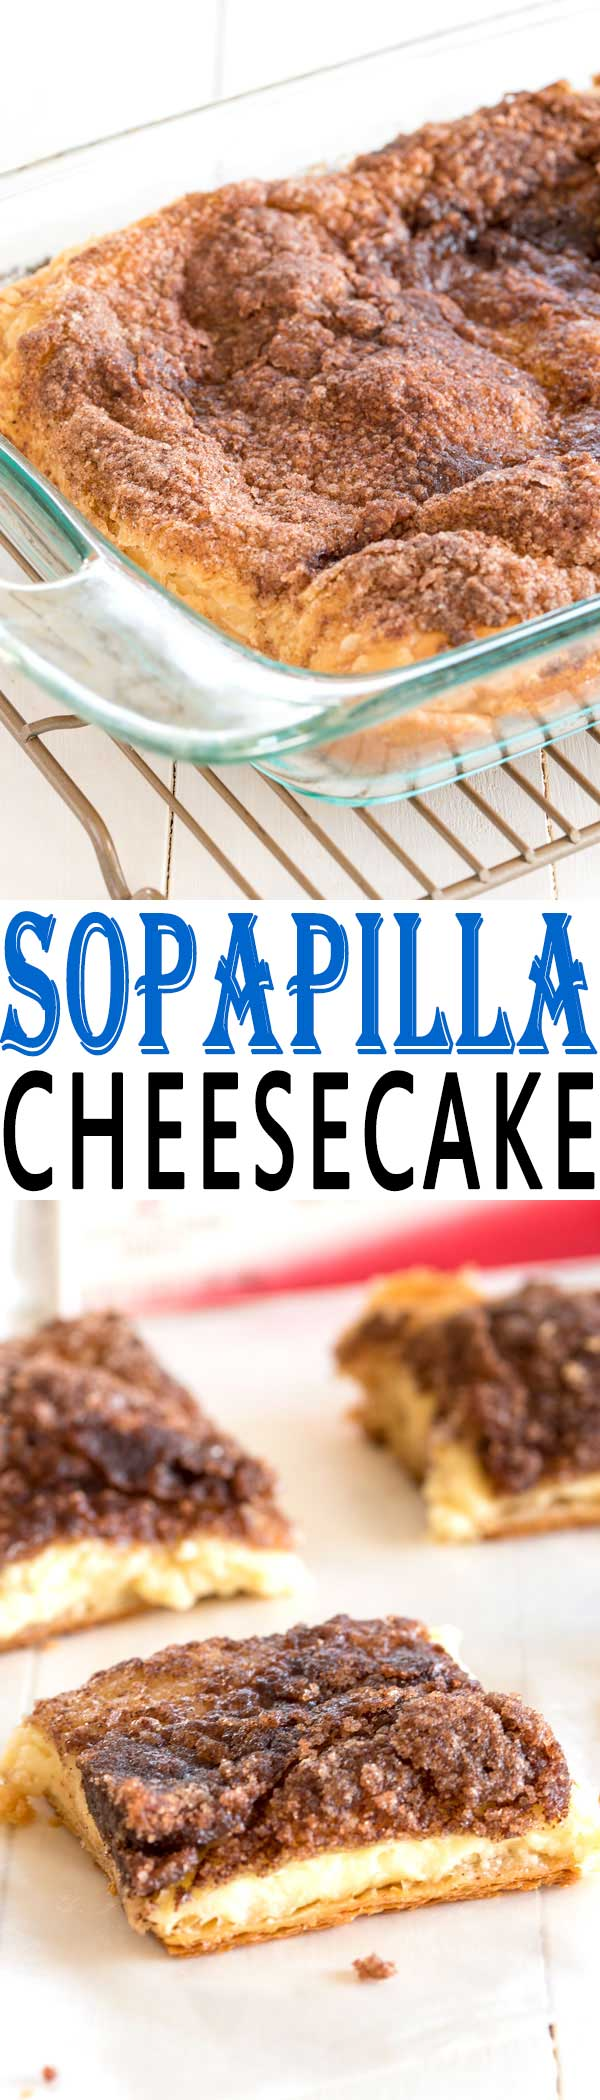 Puff Pastry Sopapilla Cheesecake Bars - this easy recipe takes a favorite Mexican dessert to a whole new level using Puff Pastry! {AD} @PuffPastry https://ooh.li/96bb360 #InspiredByPuff #puffpatsry #cheesecake #dessert #dessertrecipe #desserttable #recipe #food #foodblog #recipeideas #recipeoftheday